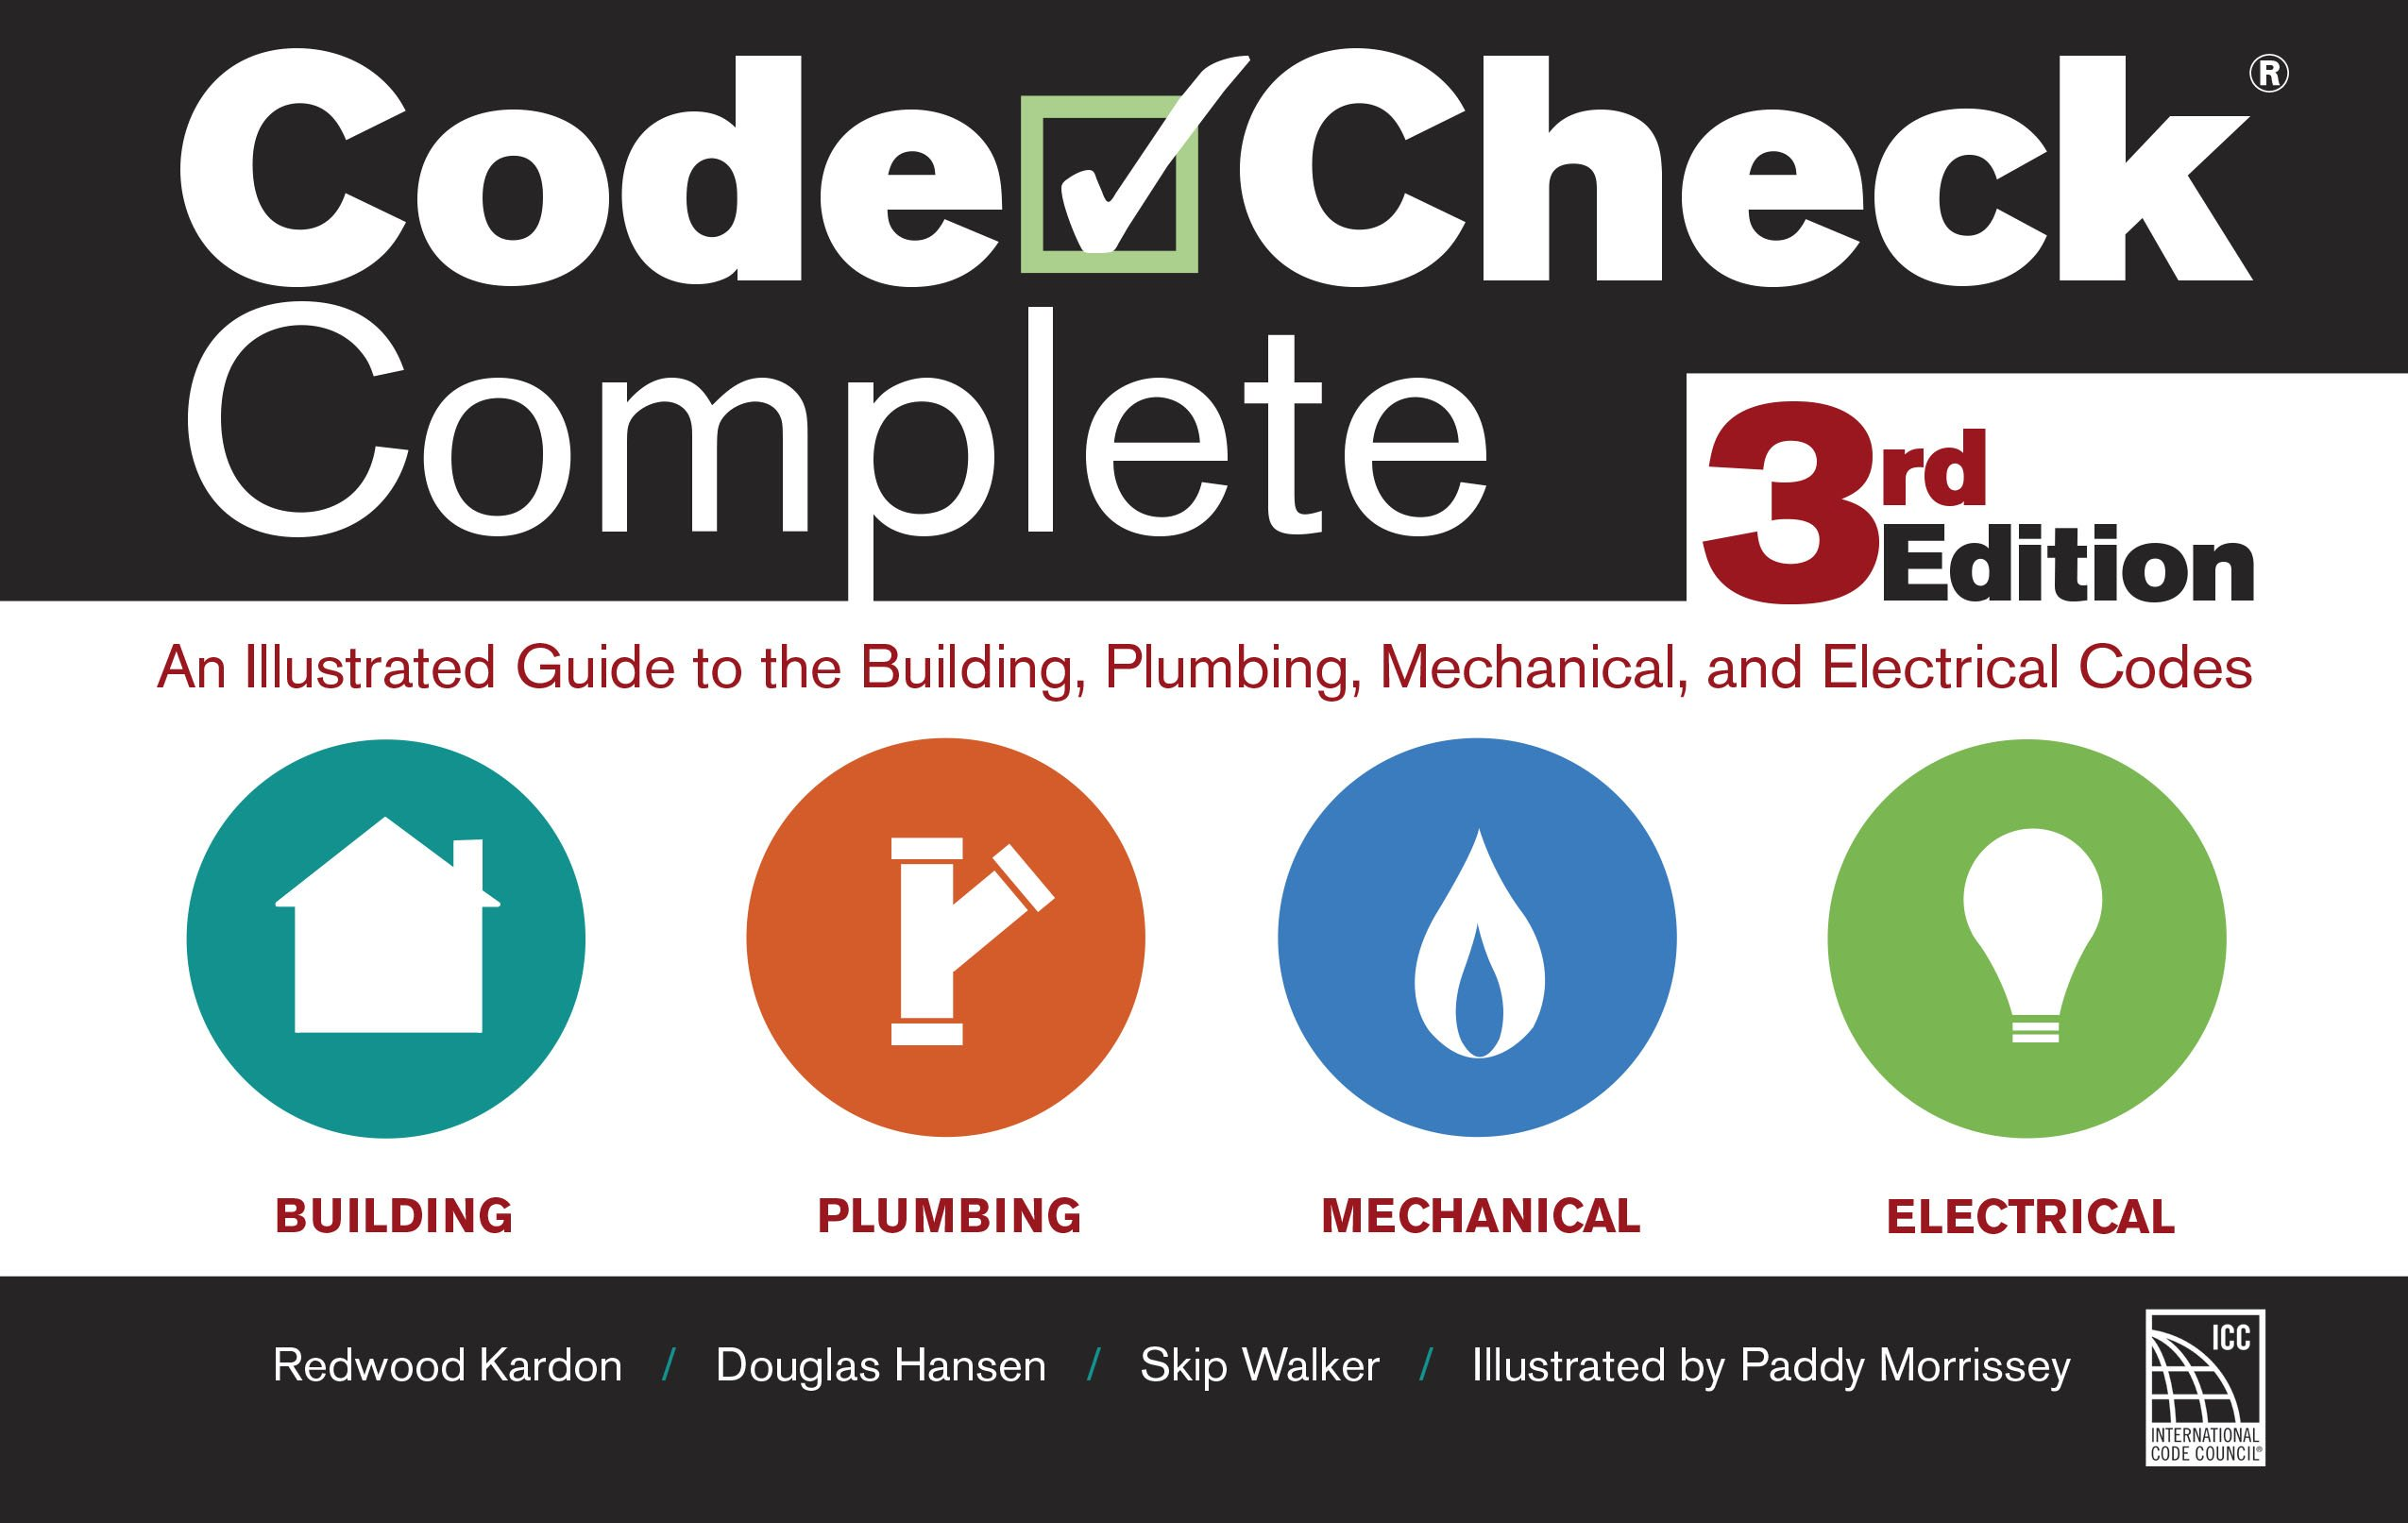 Code Check Complete 3rd Edition: An Illustrated Guide to the Building, Plumbing, Mechanical, and Electrical Codes